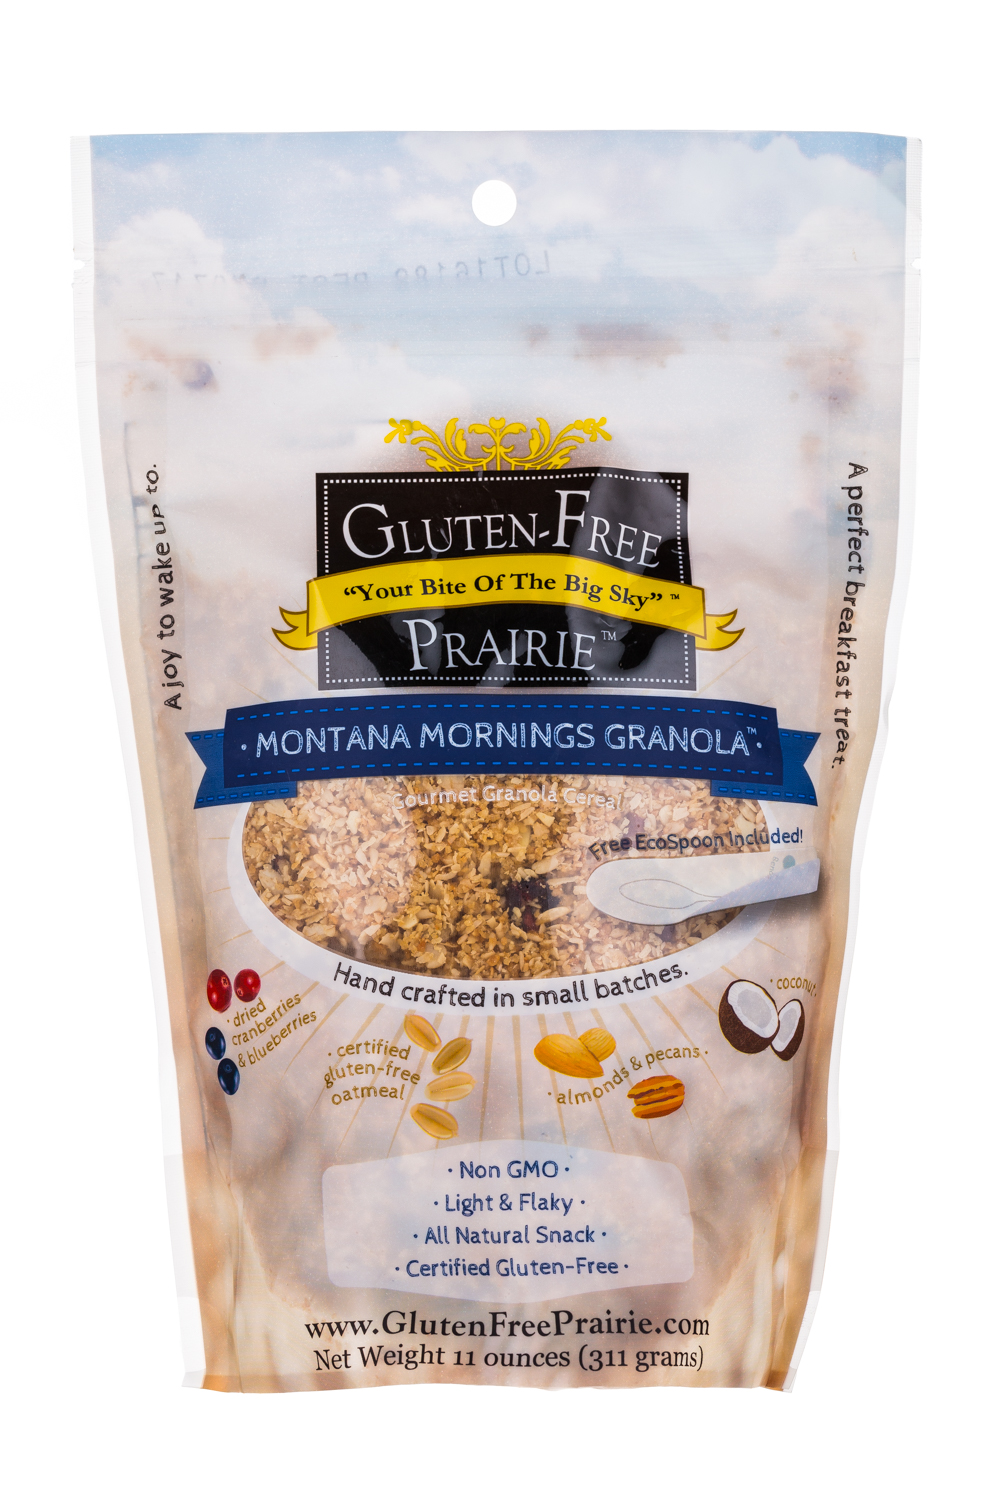 Montana mornings Granola